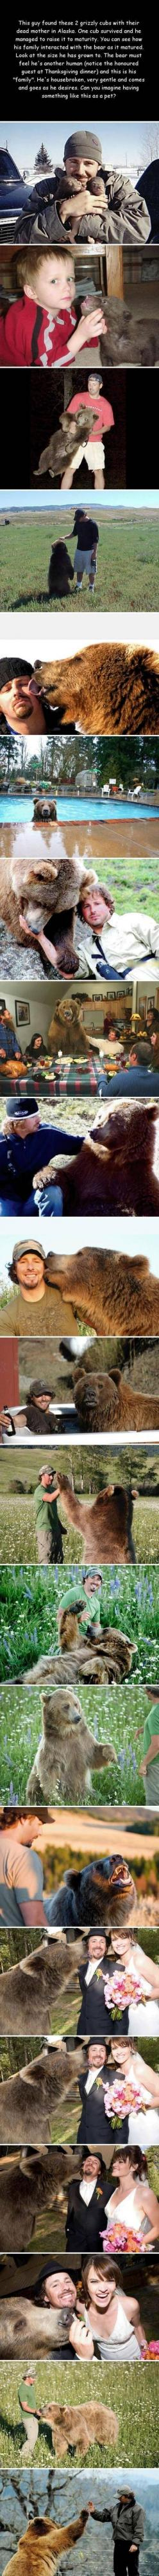 this dude has a freaking grizzly as his pet.: Humanity Restored, Adorable Animals, Wild Animals, Pet Bear, Bear Cubs, Grizzly Bears